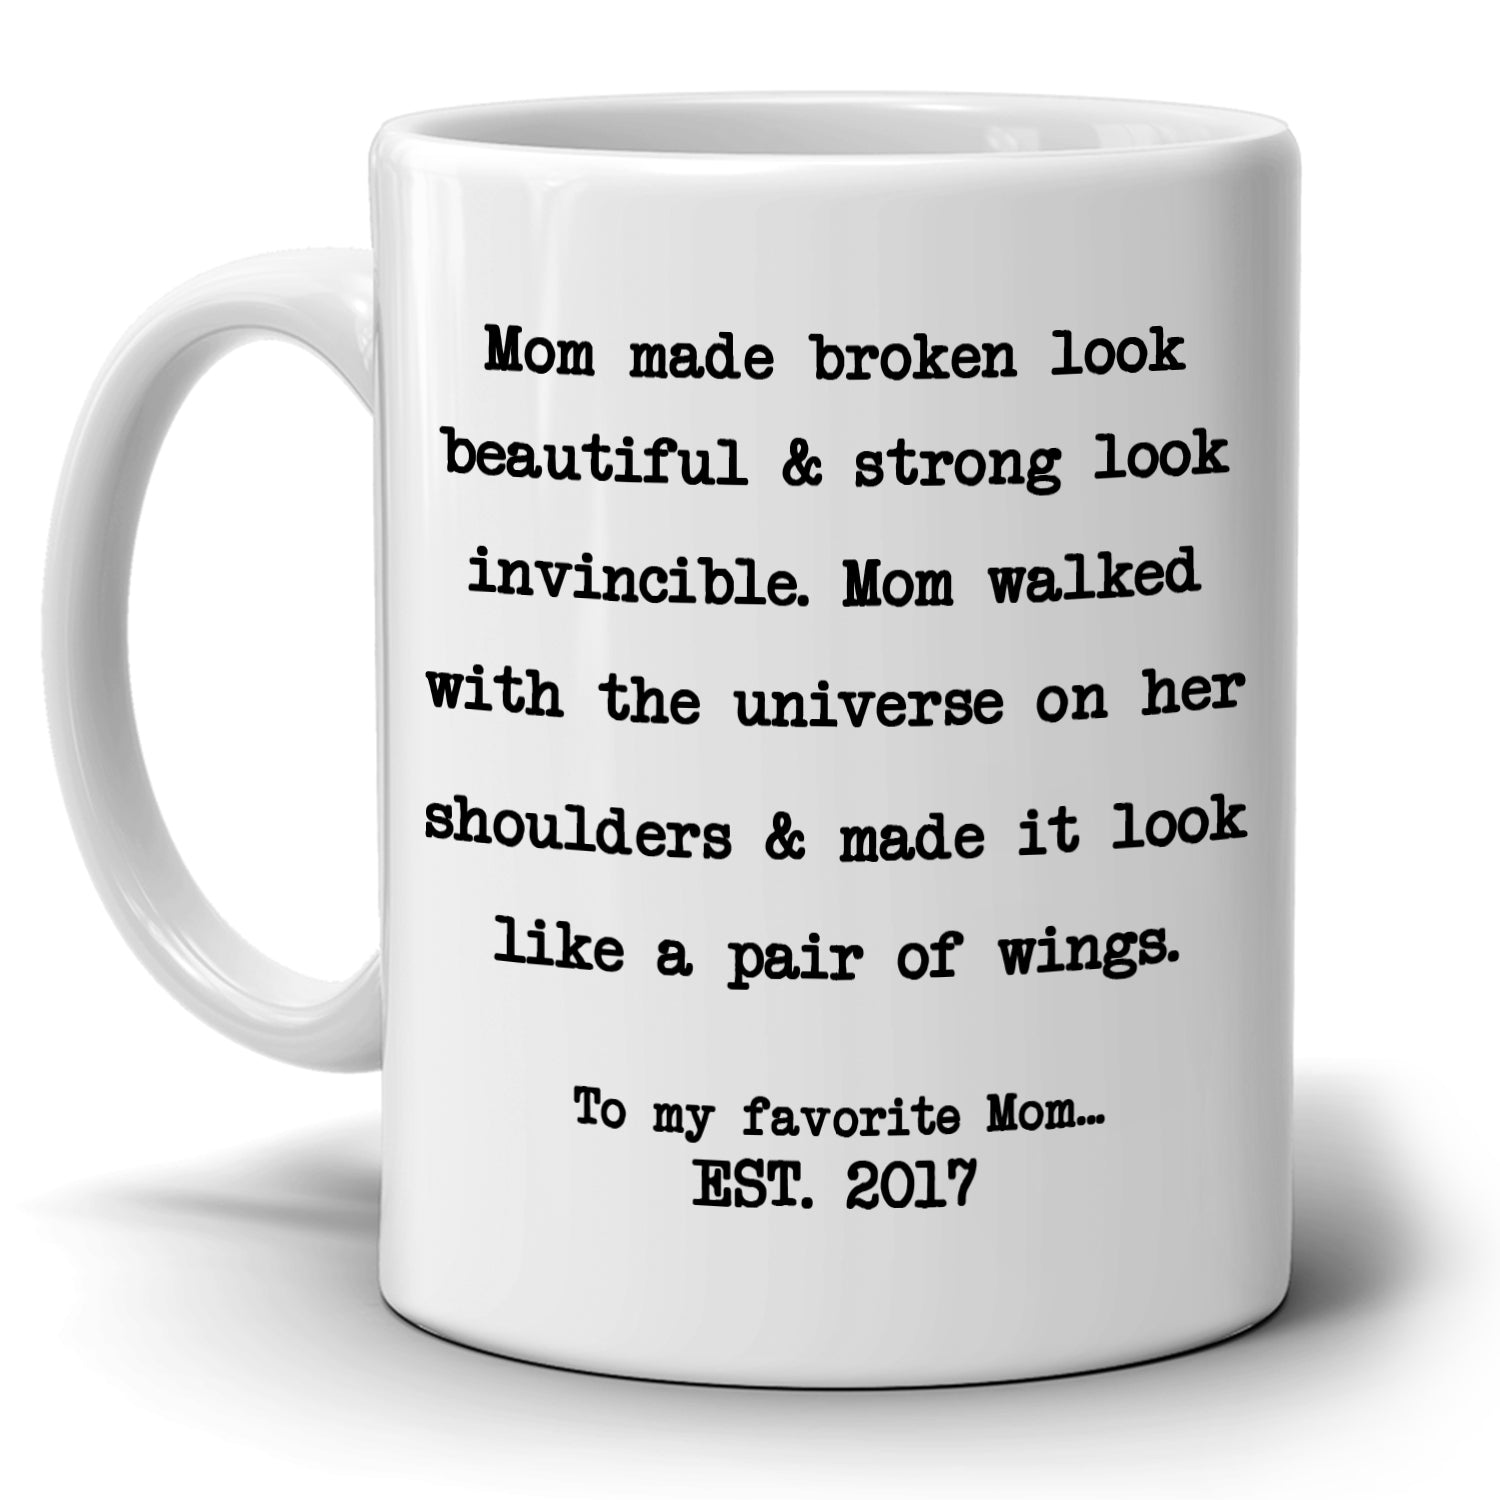 Perfect Gift For Mom From Daughter Coffee Mug Unique Presents Mothers Day Birthday And Grandma Thank You Gifts